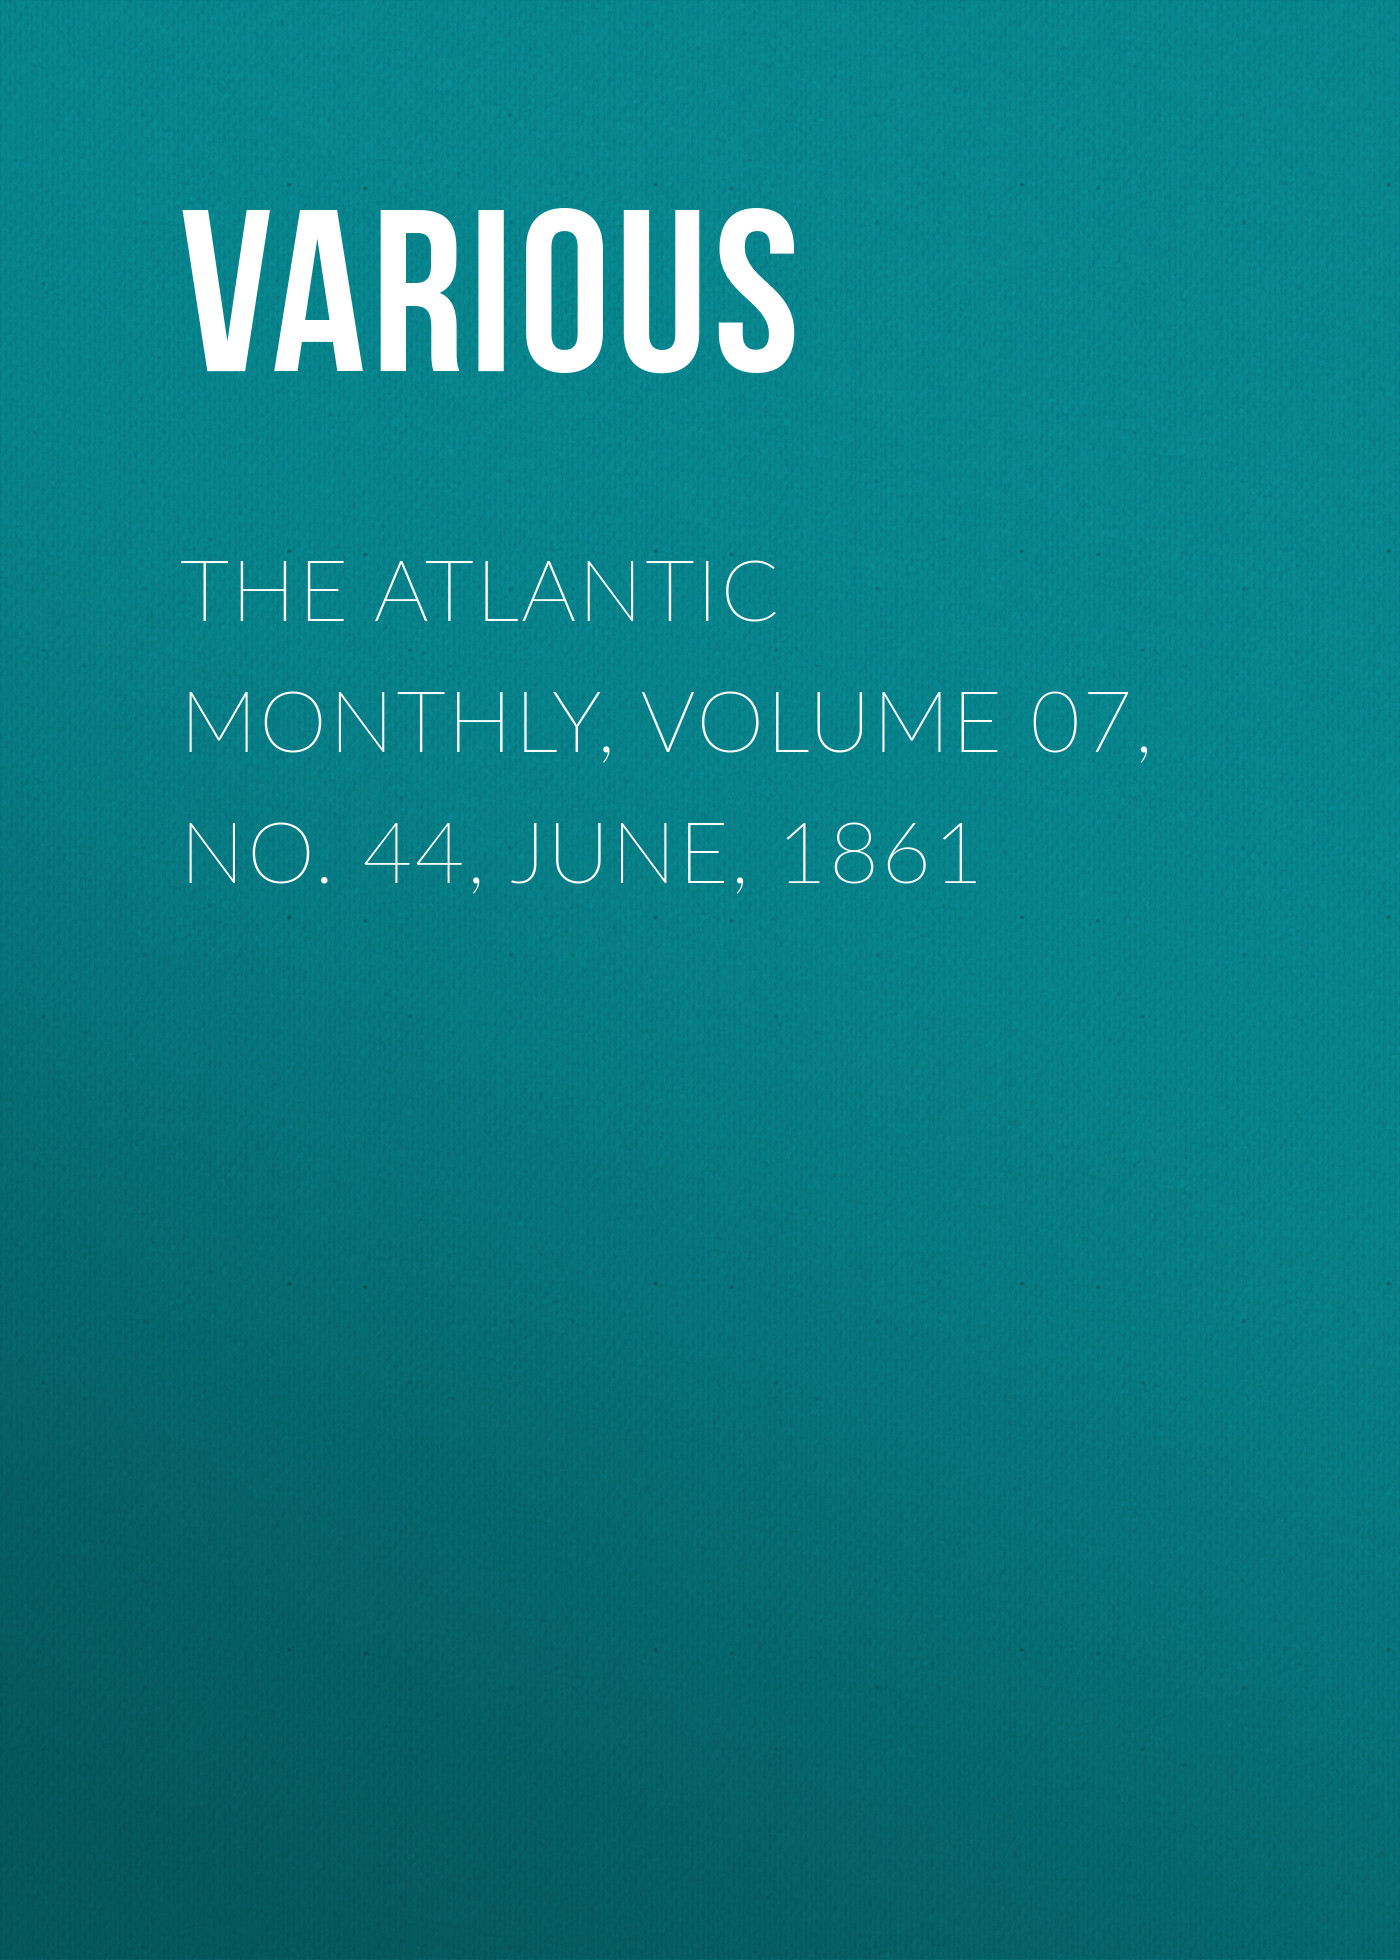 Various The Atlantic Monthly, Volume 07, No. 44, June, 1861